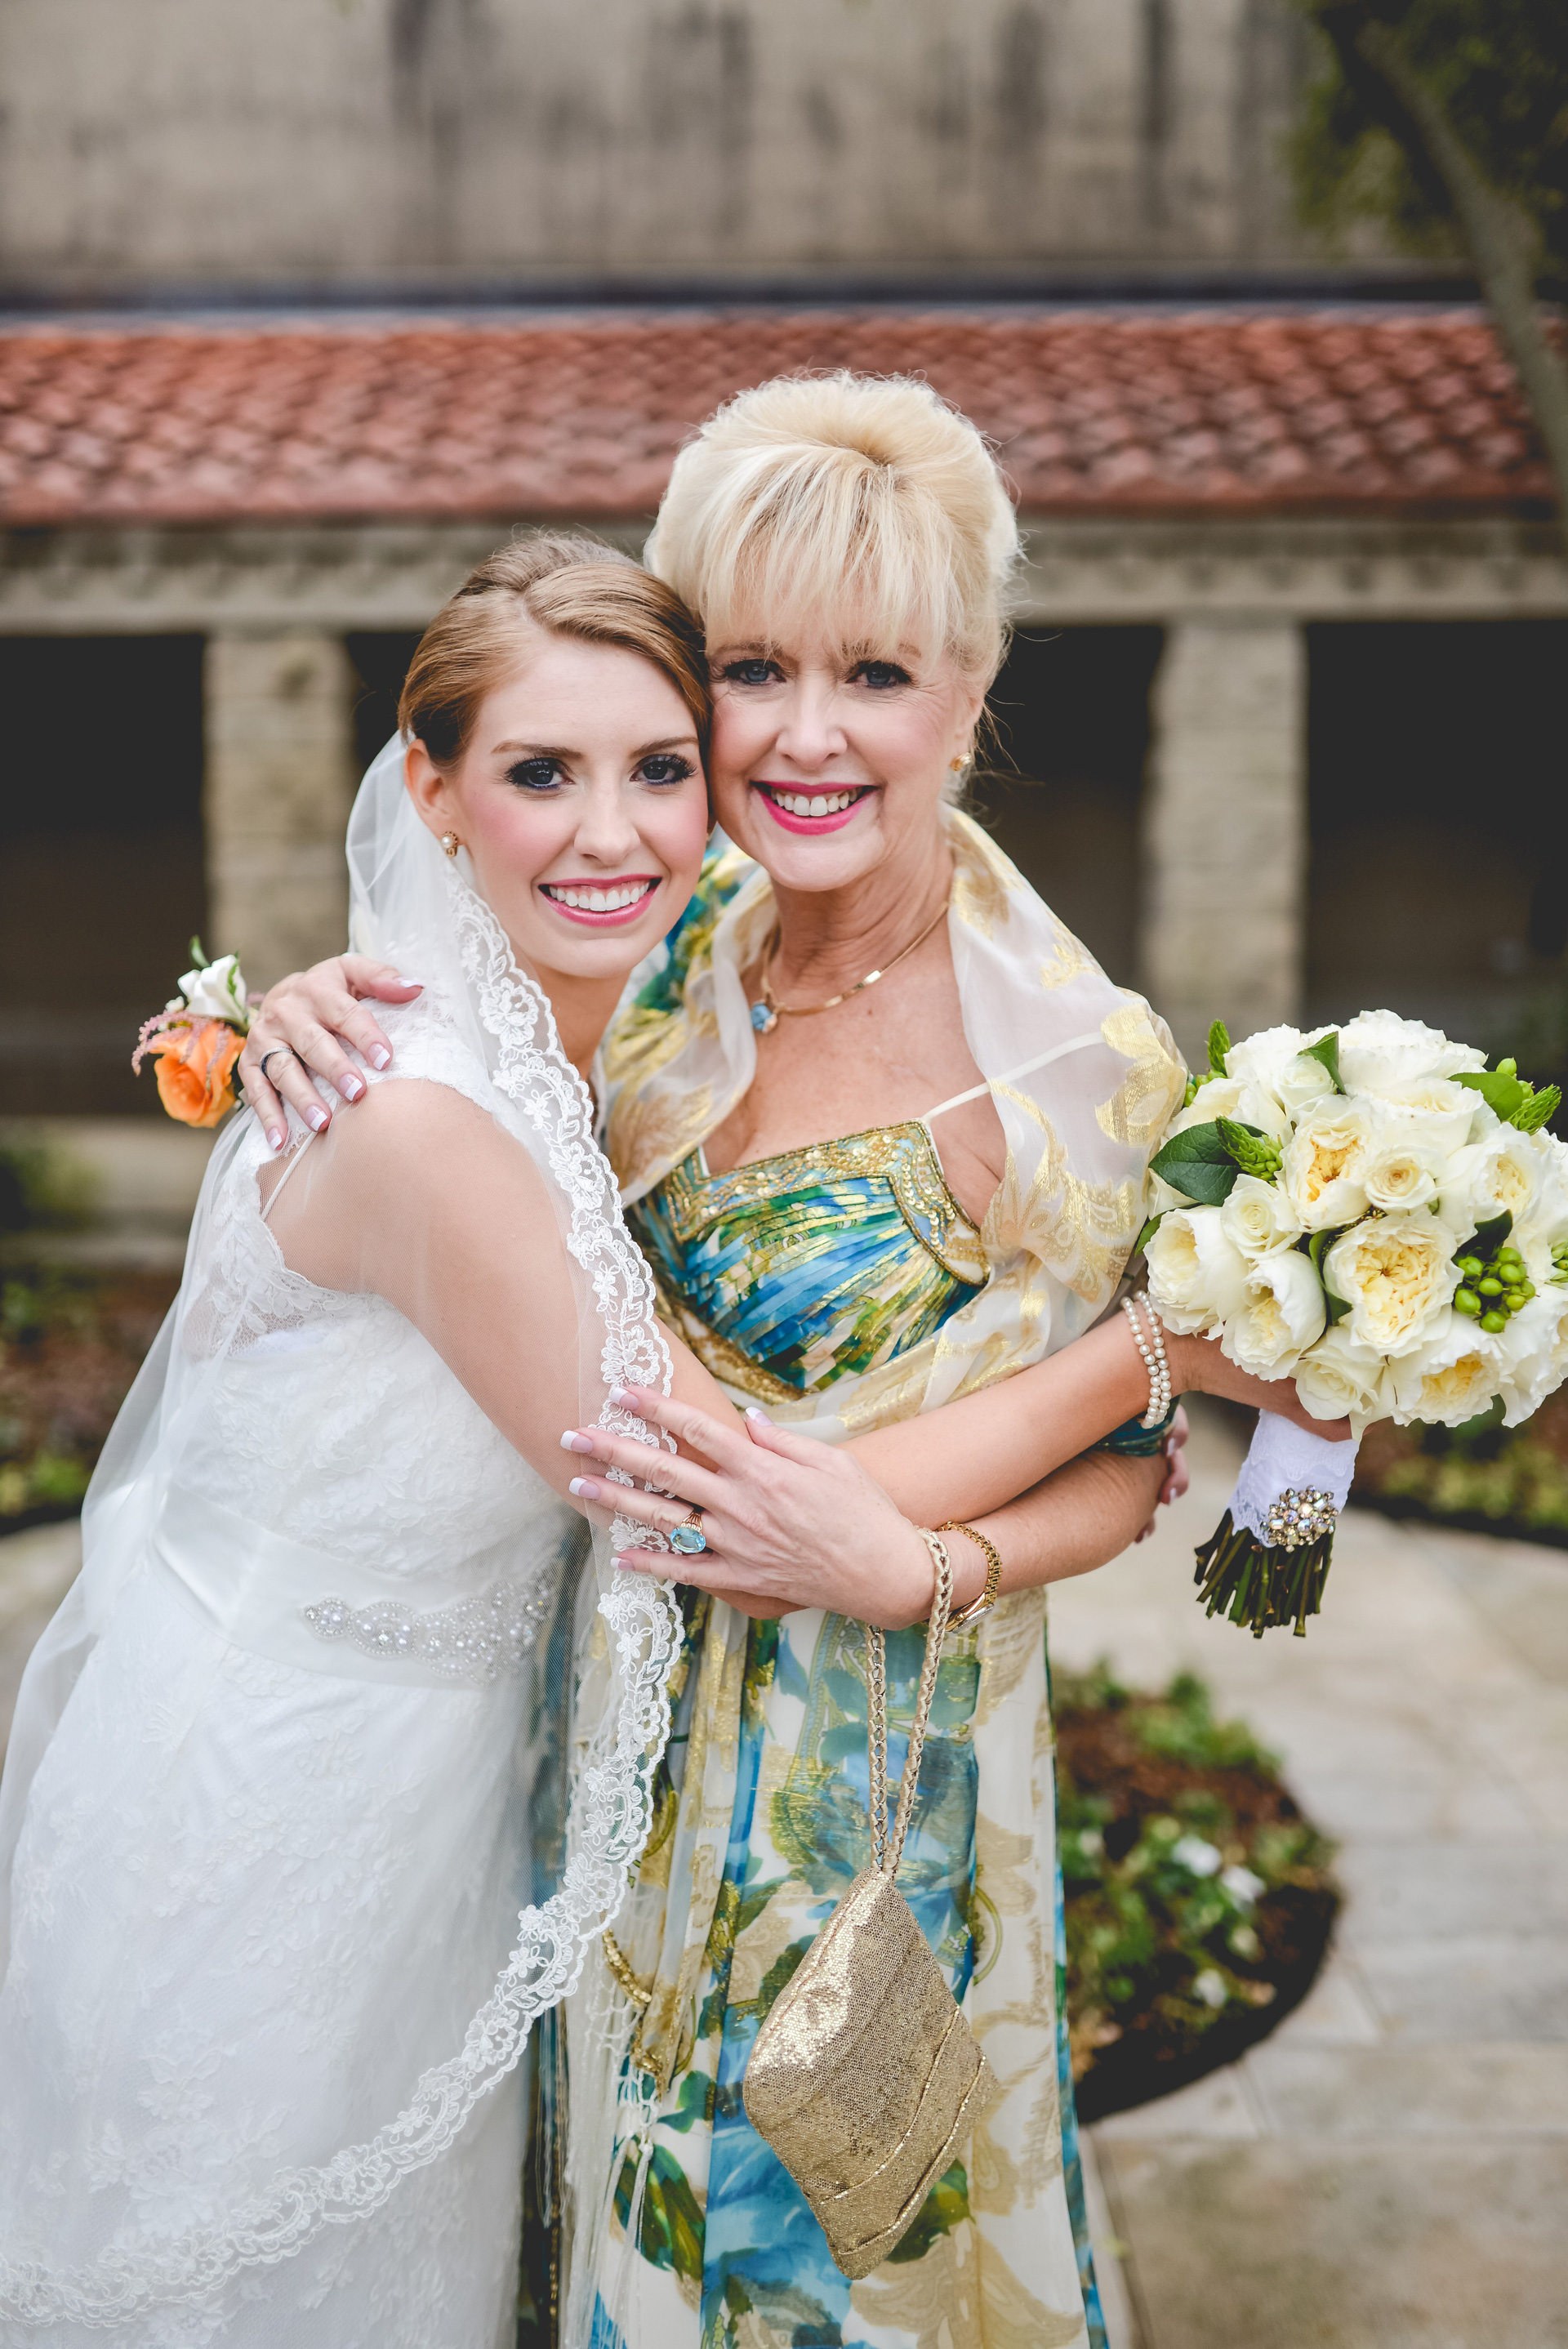 Woman living with terminal breast cancer fulfills lifelong dream